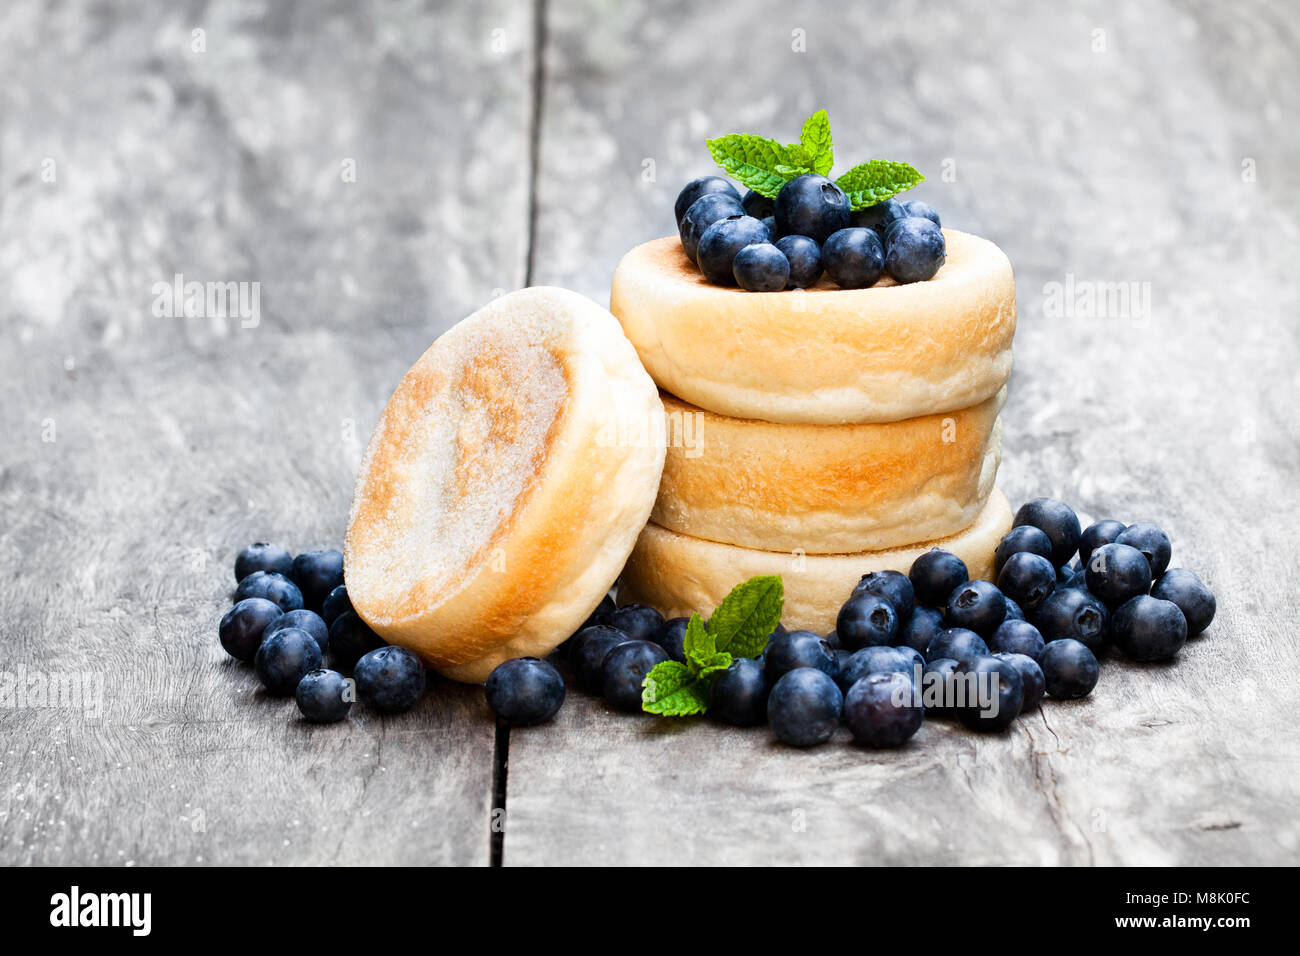 Stack  of thick yeast pancakes with blueberries on wooden table - Stock Image